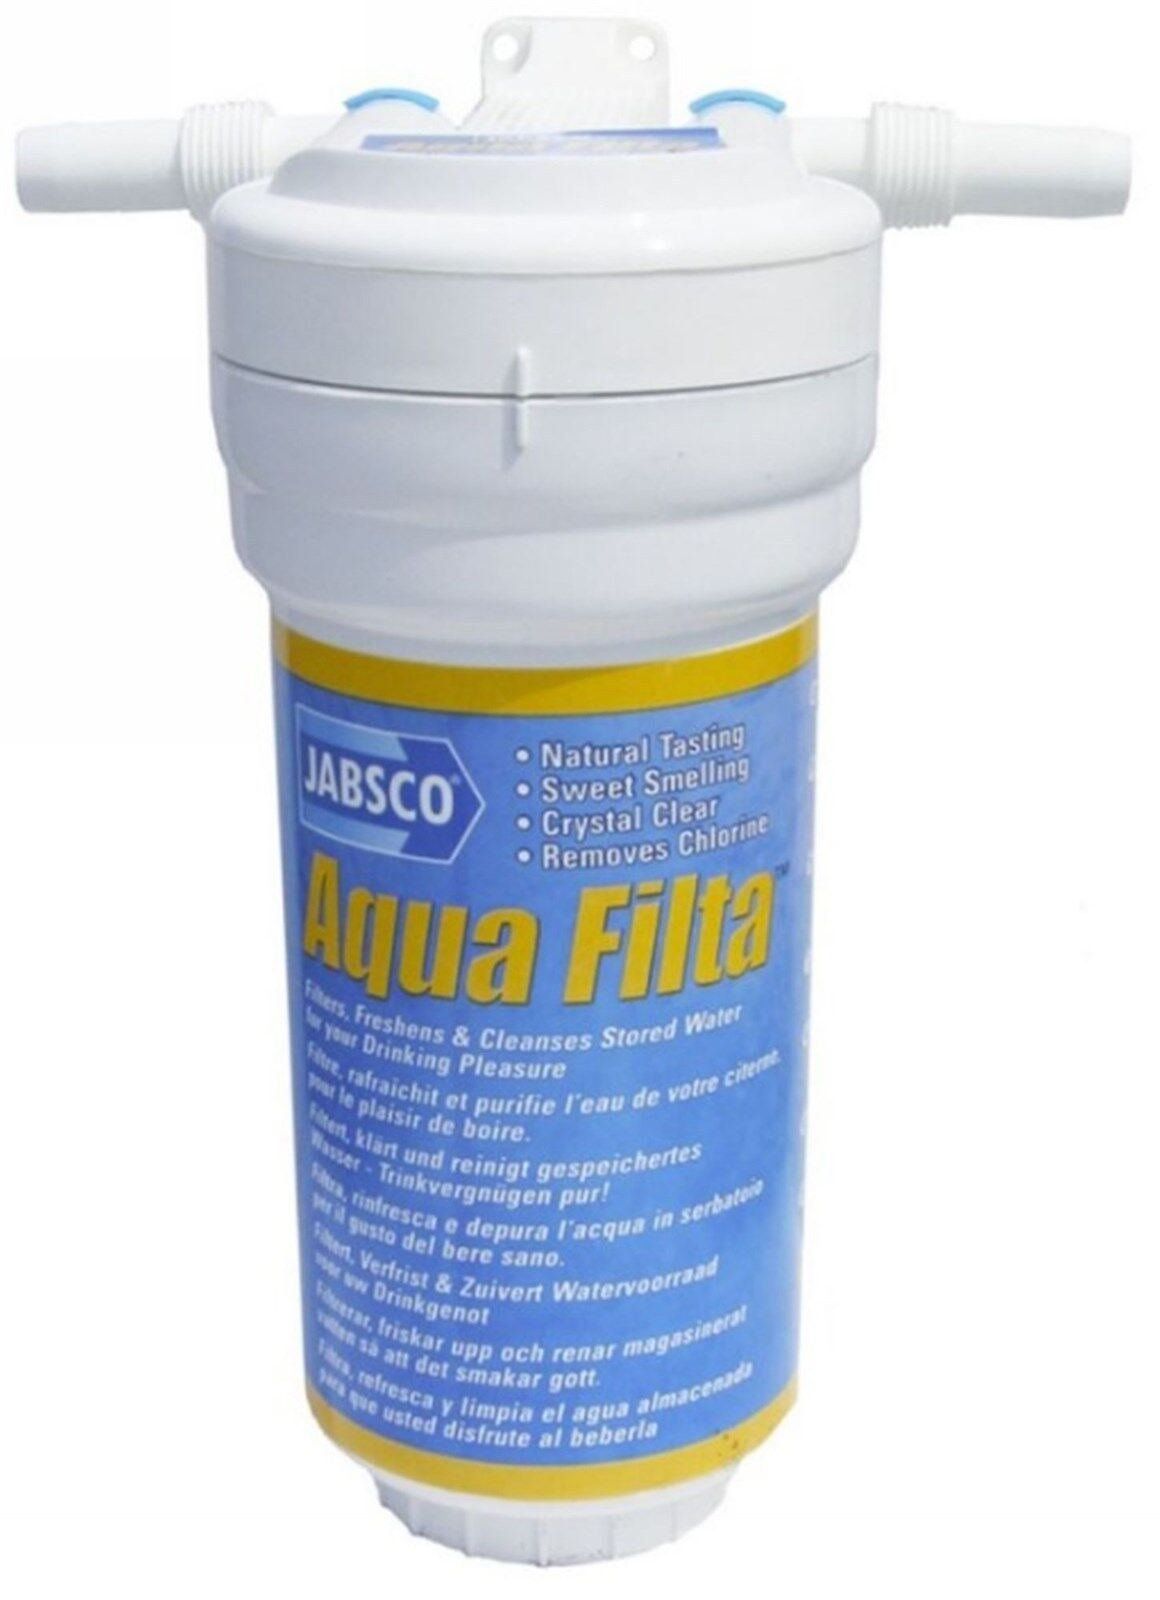 Jabsco Aqua Filta Water Filter Complete Unit 59000-1000